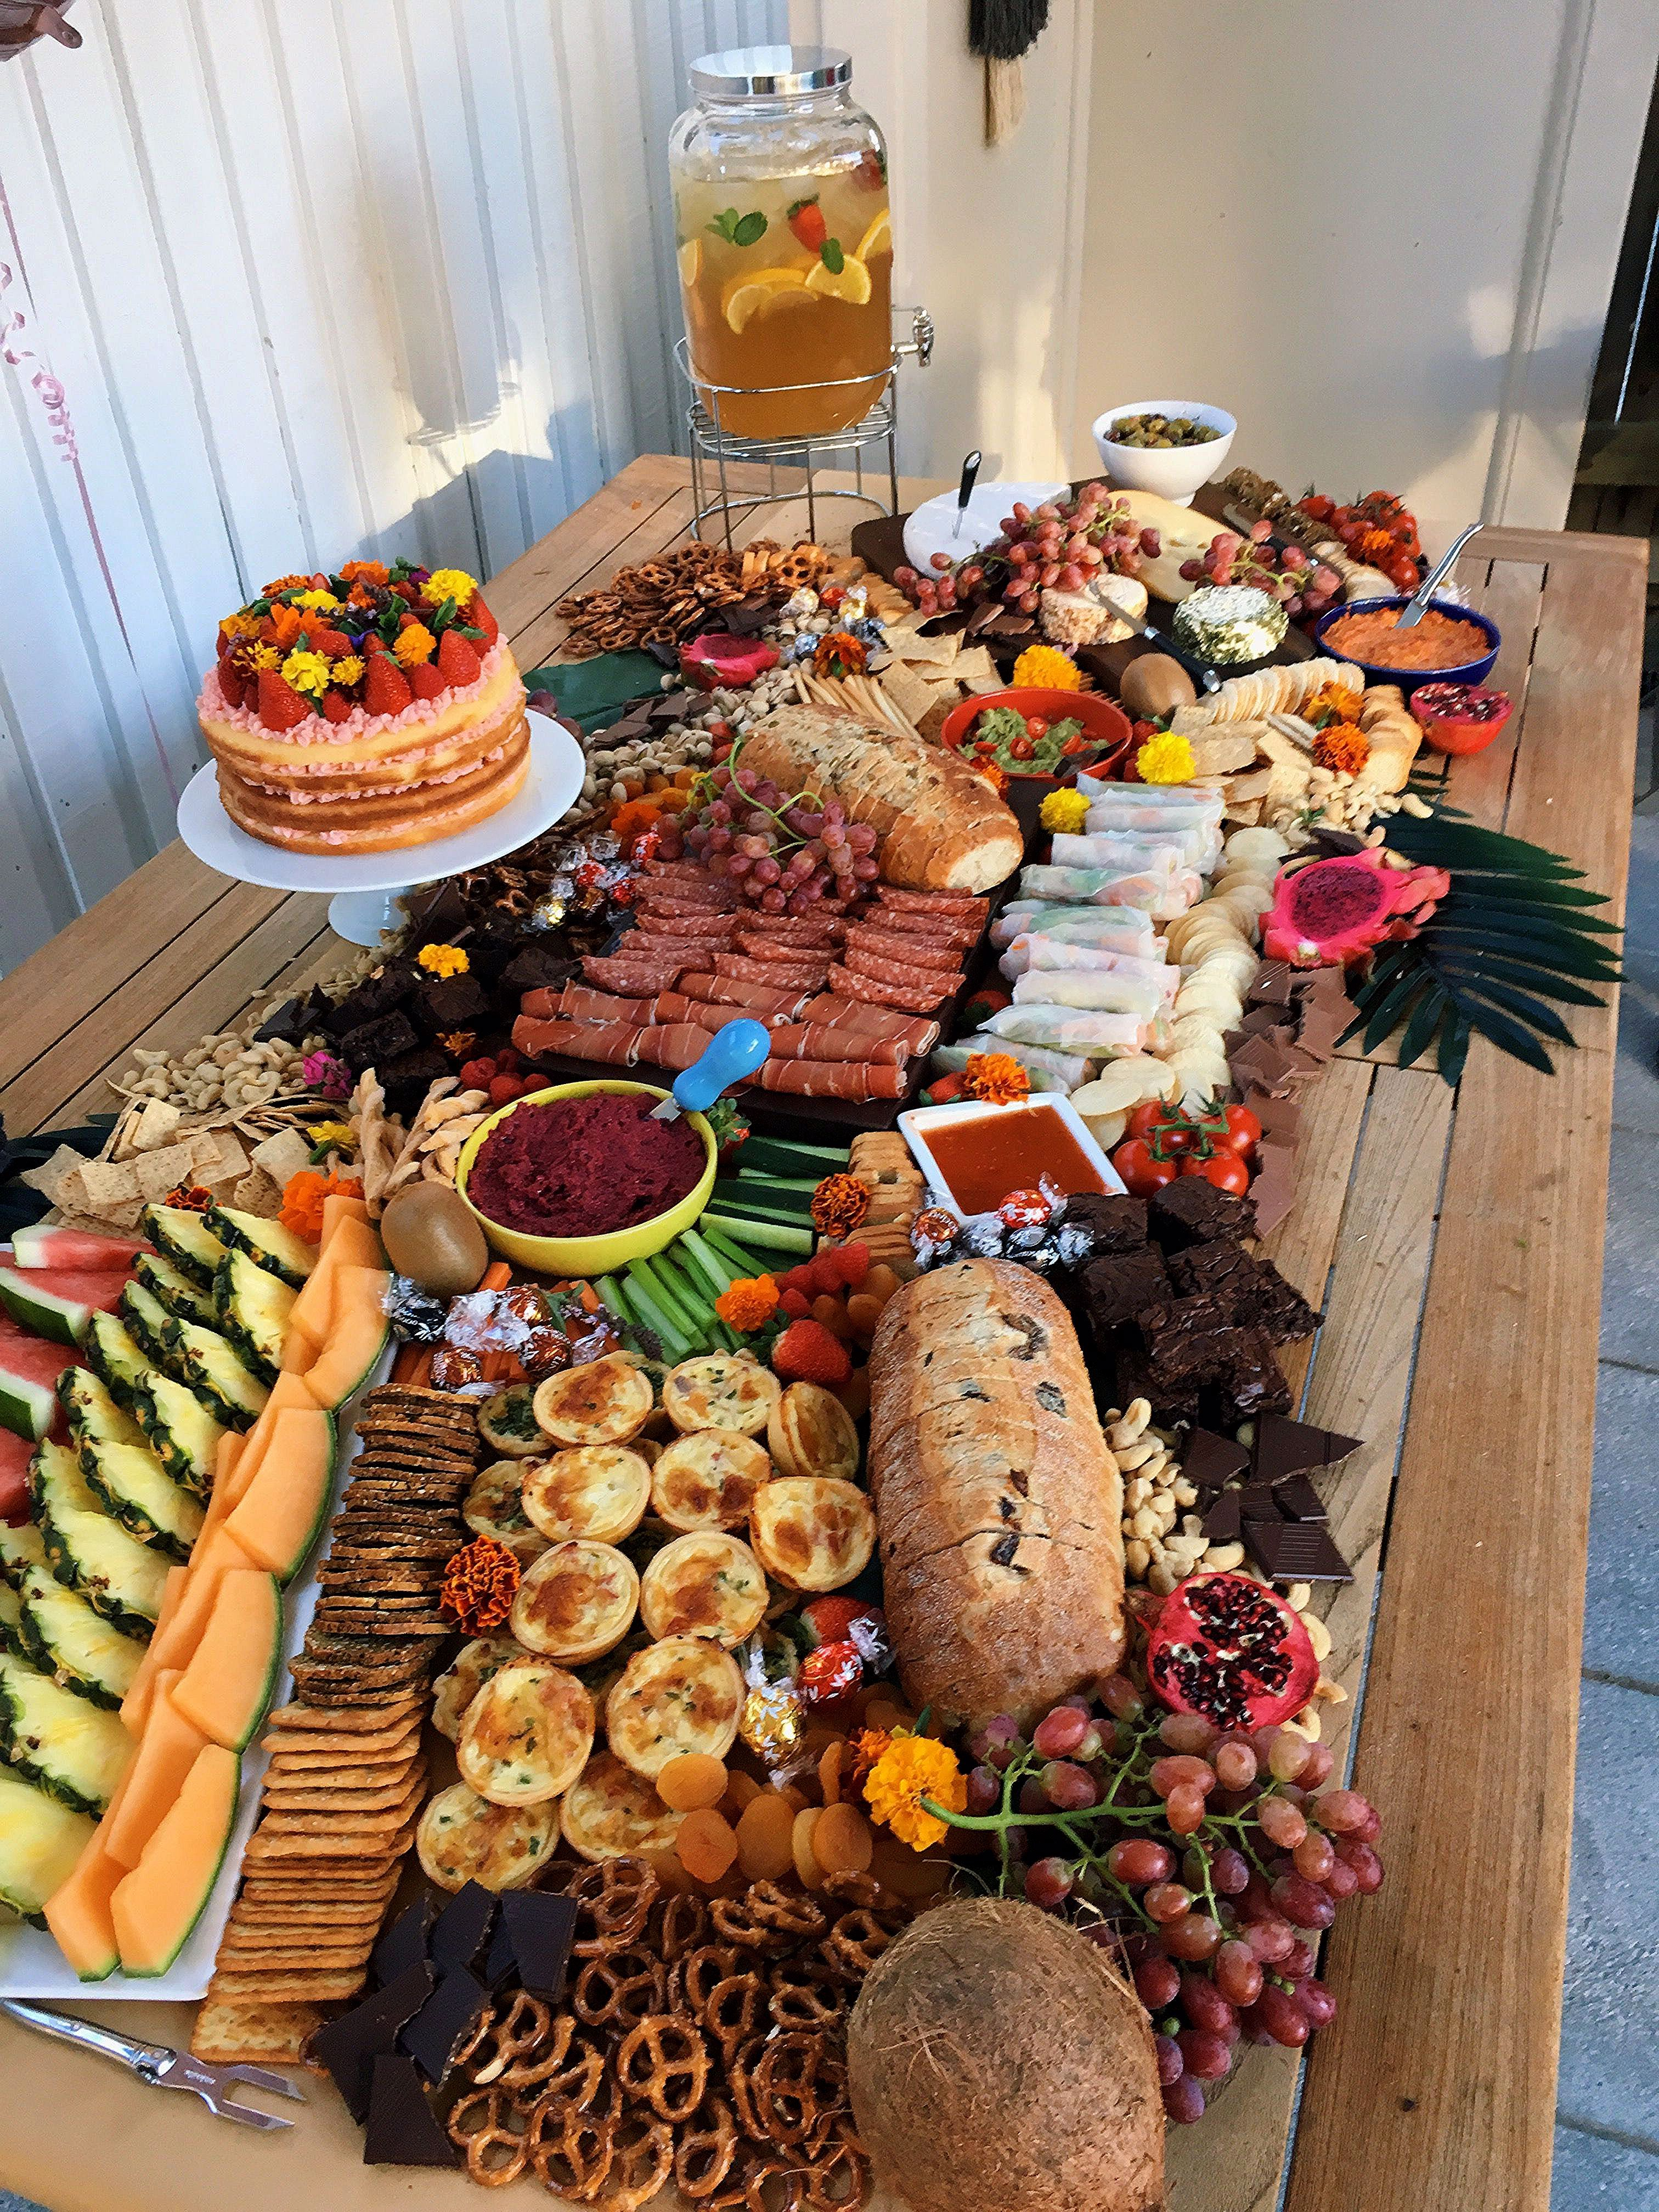 Party Essen Ideen Grazing Table | Party Food Appetizers, Food Platters, Party Food Platters